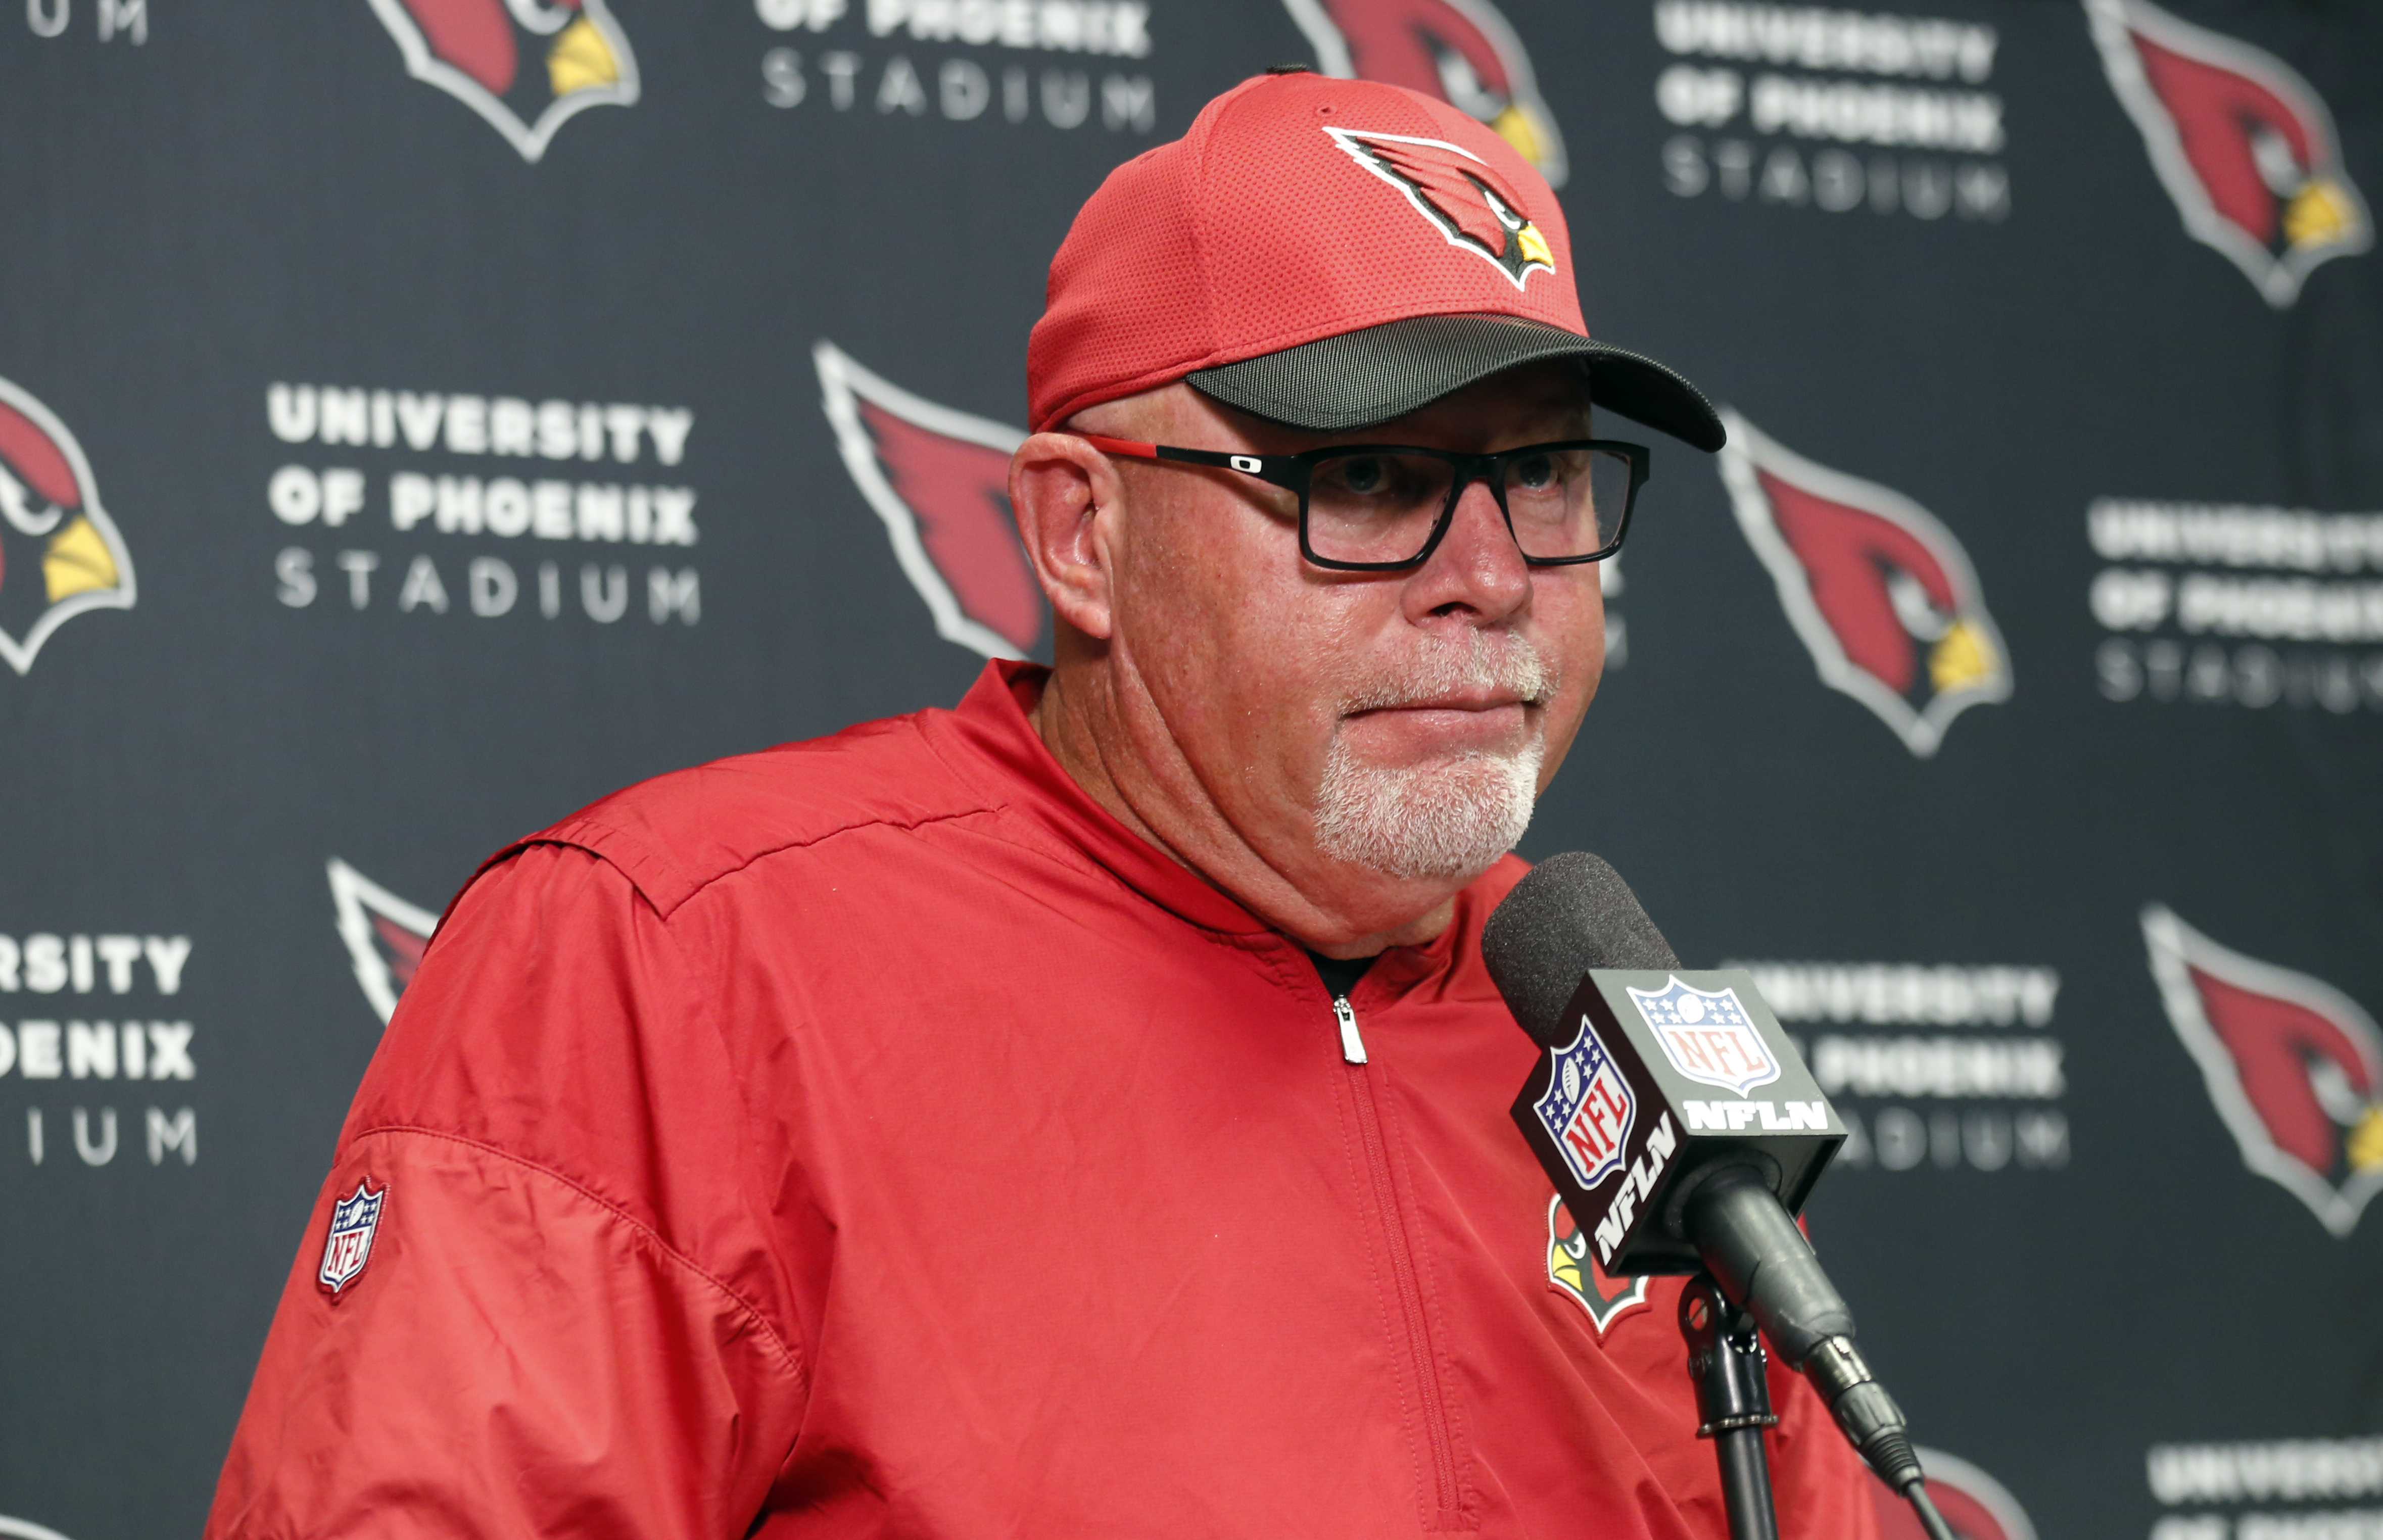 FILE - In this Sunday, Nov. 20, 2016, file photo, Arizona Cardinals head coach Bruce Arians speaks during a news conference after a 30-24 loss to the Minnesota Vikings in an NFL football game, in Minneapolis. (AP Photo/Andy Clayton-King, File)